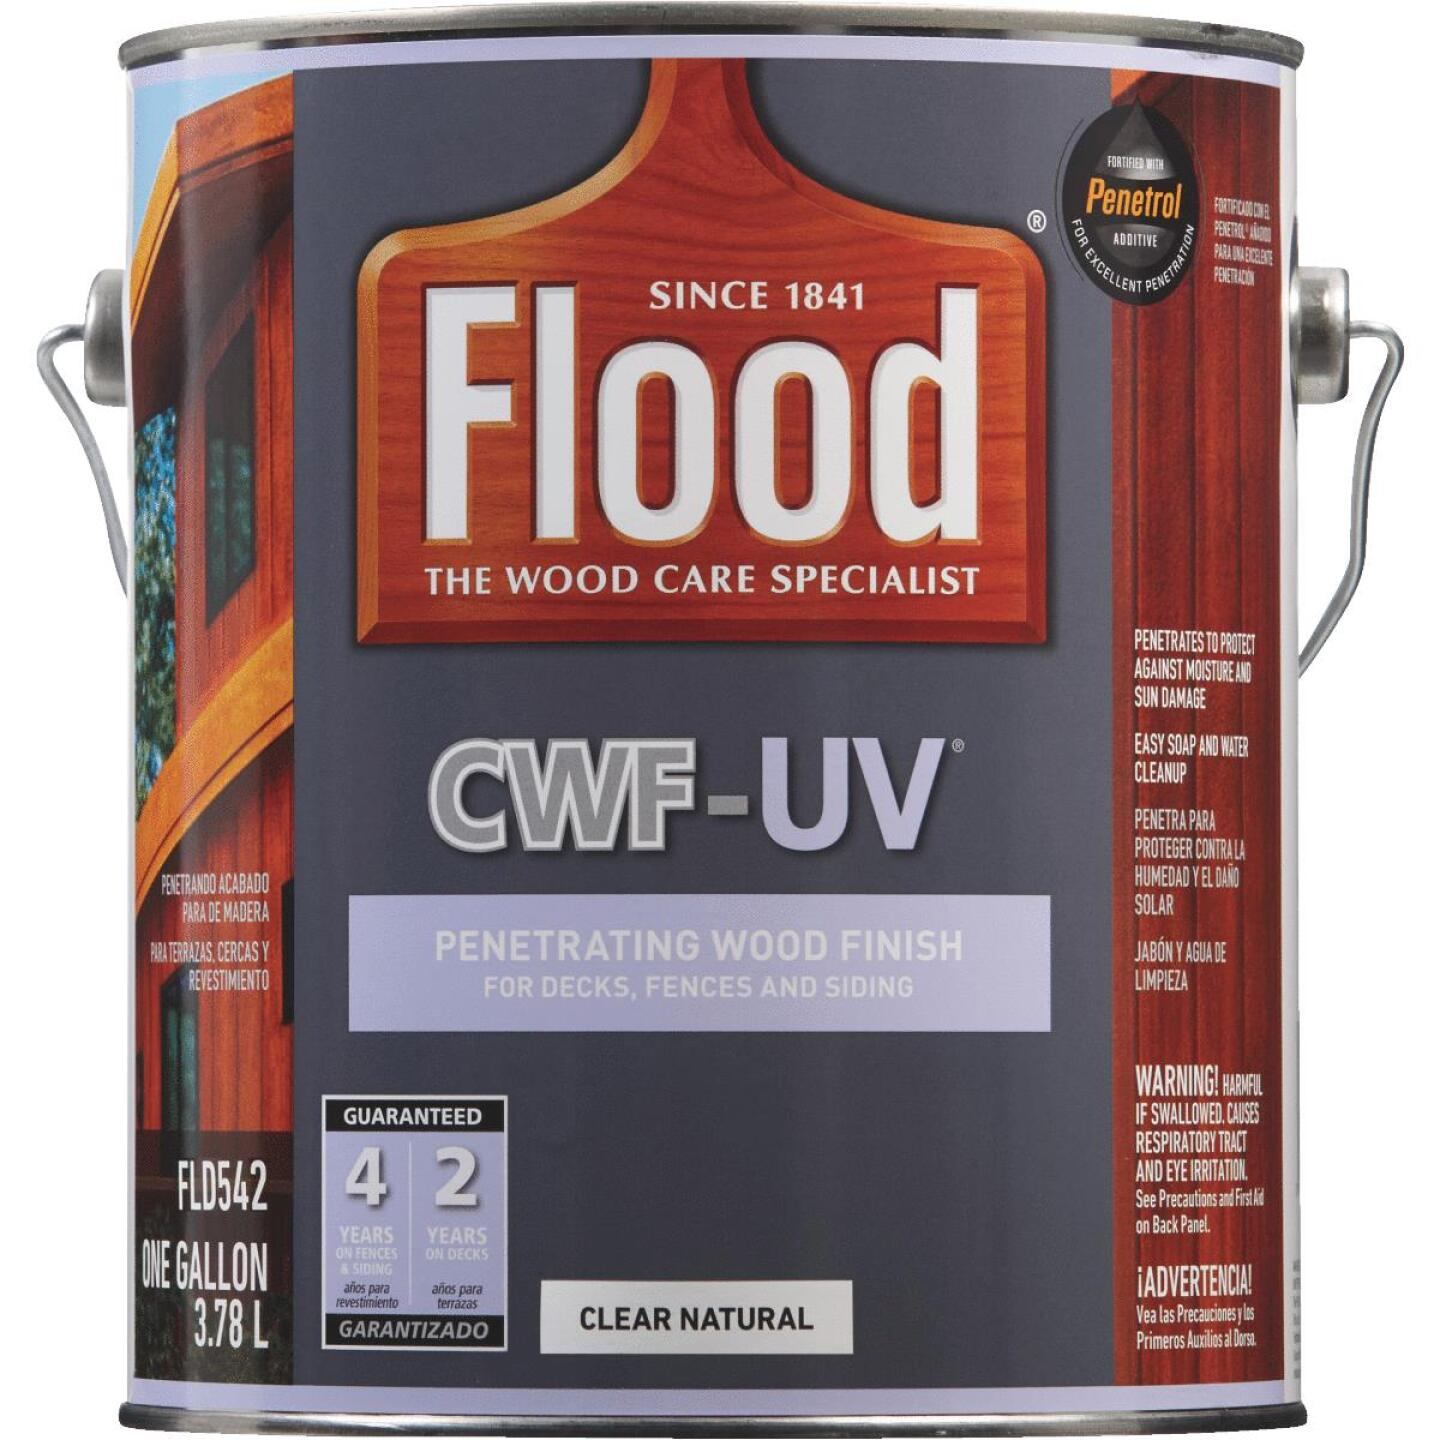 Flood CWF-UV Oil-Modified Fence Deck and Siding Wood Finish, Natural, 1 Gal. Image 2